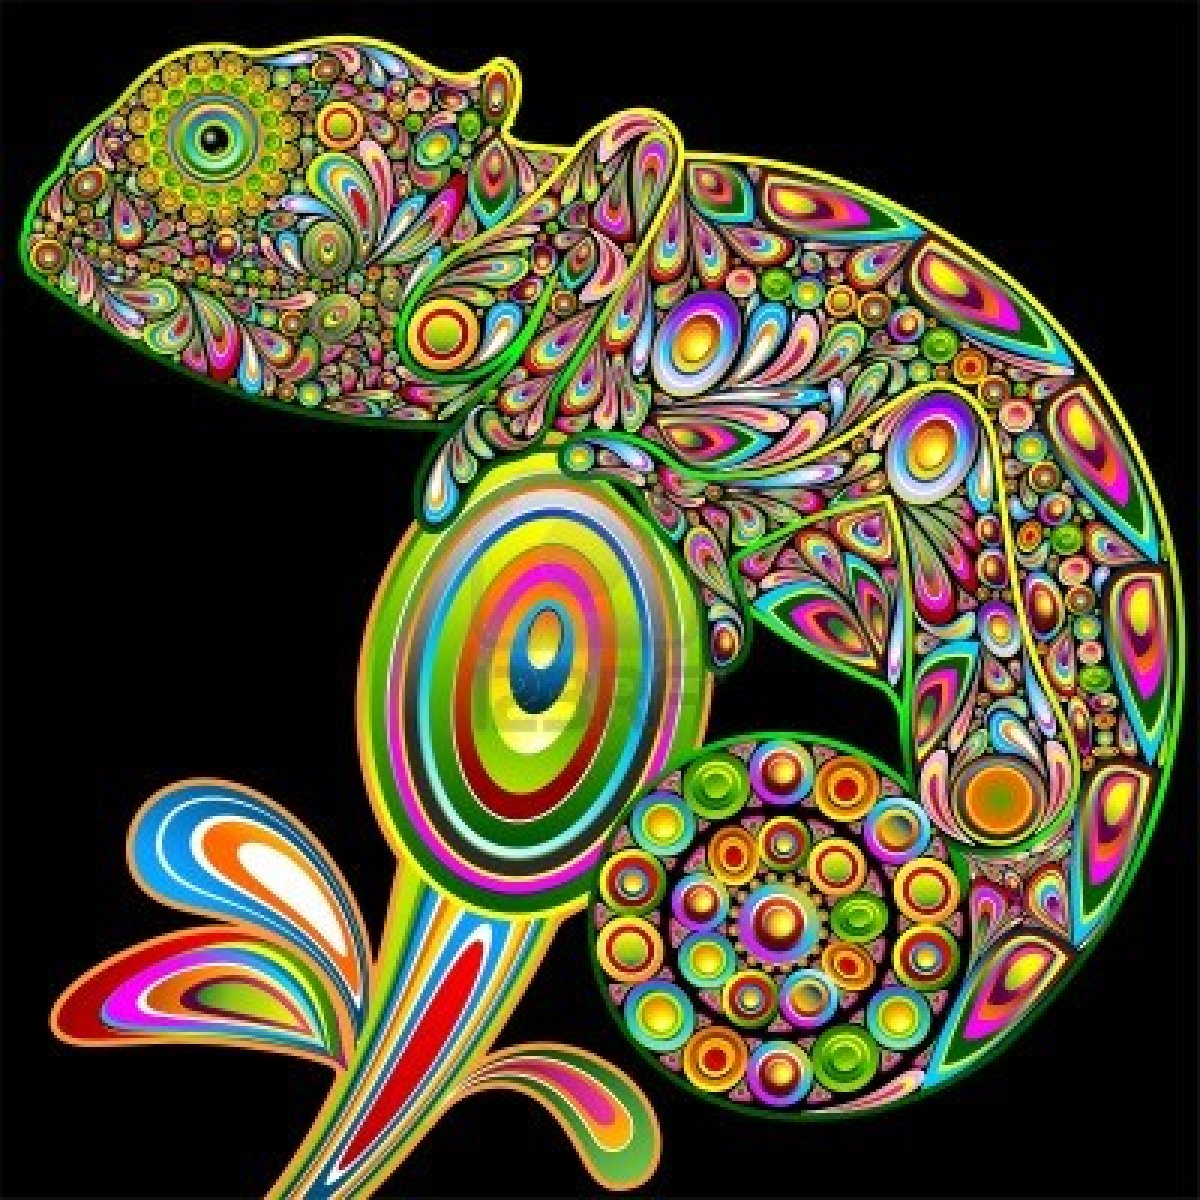 North Park Critters: psychedelic art